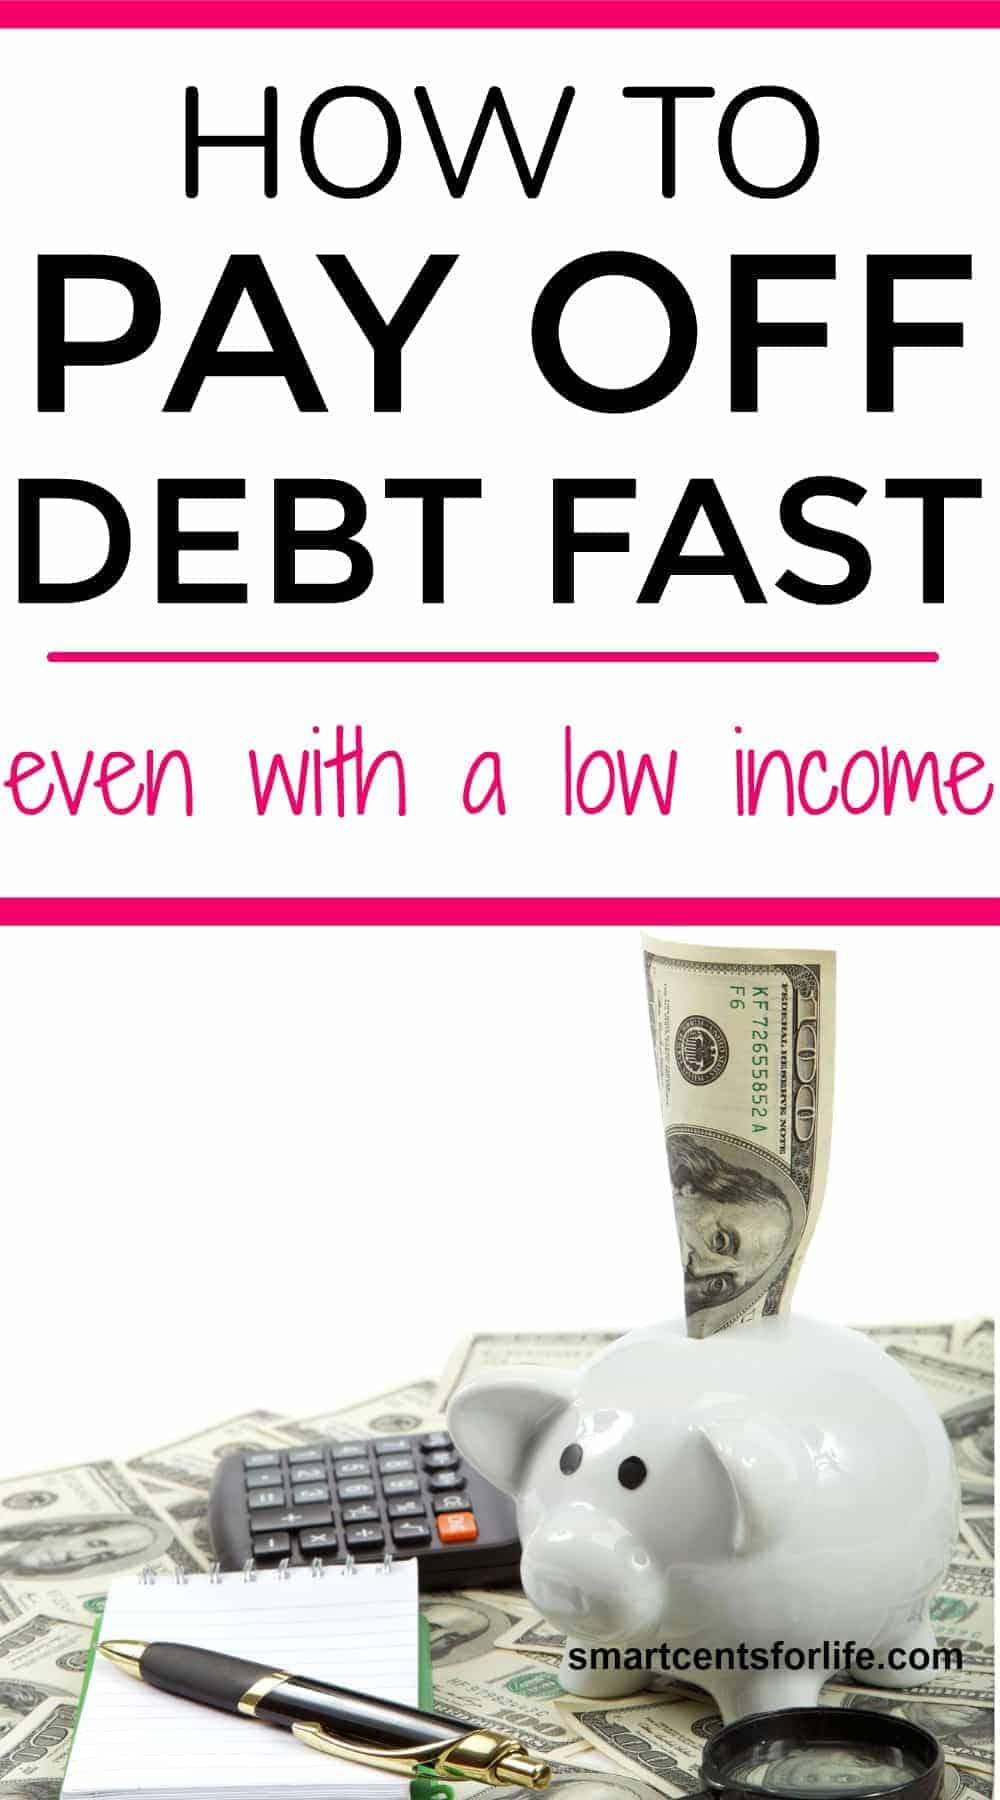 Learn these simple steps to pay off debt fast even with a low income. Yo could get out of debt quick with these tips on how to eliminate debt and reach financial freedom.